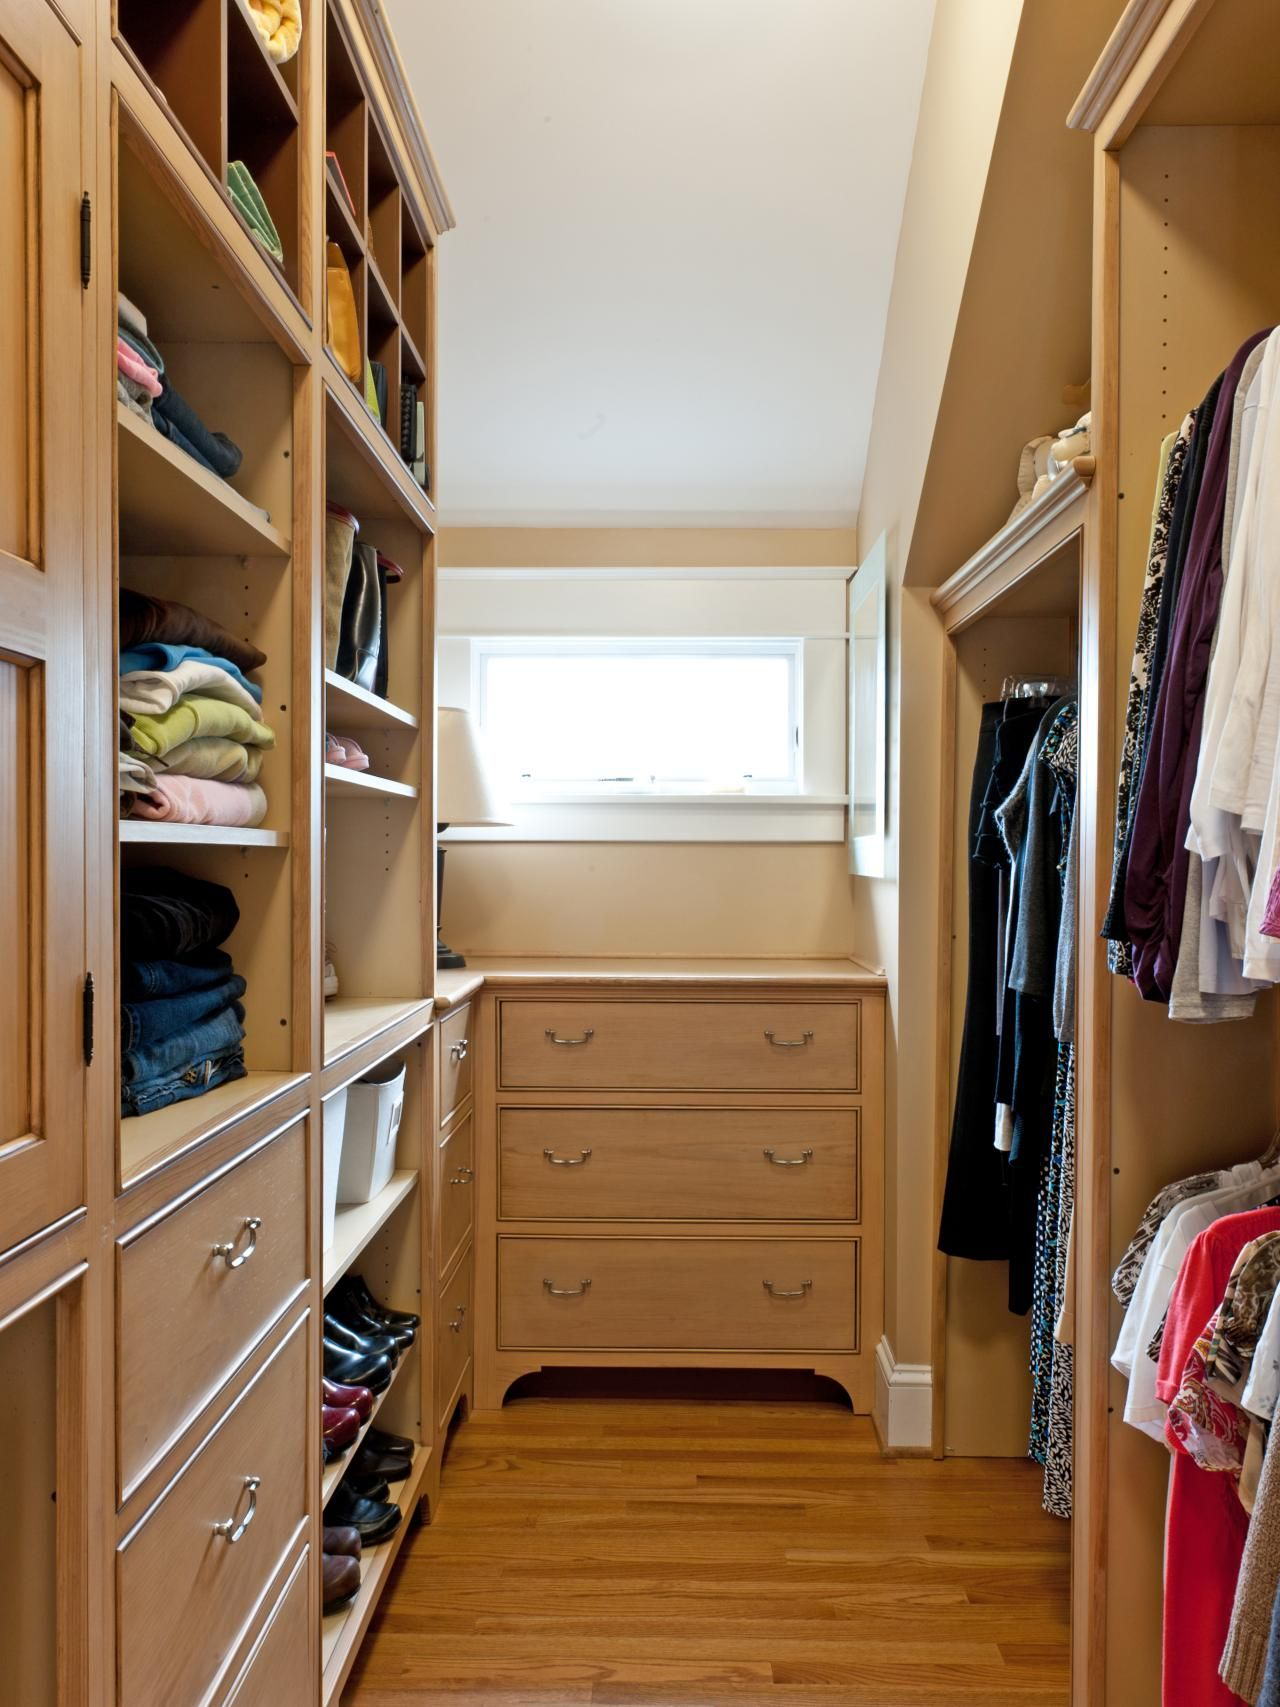 ana ideas wardrobe closetmaid from my online size best just walk design yourself space full it of in home organizer free do projects closet photo